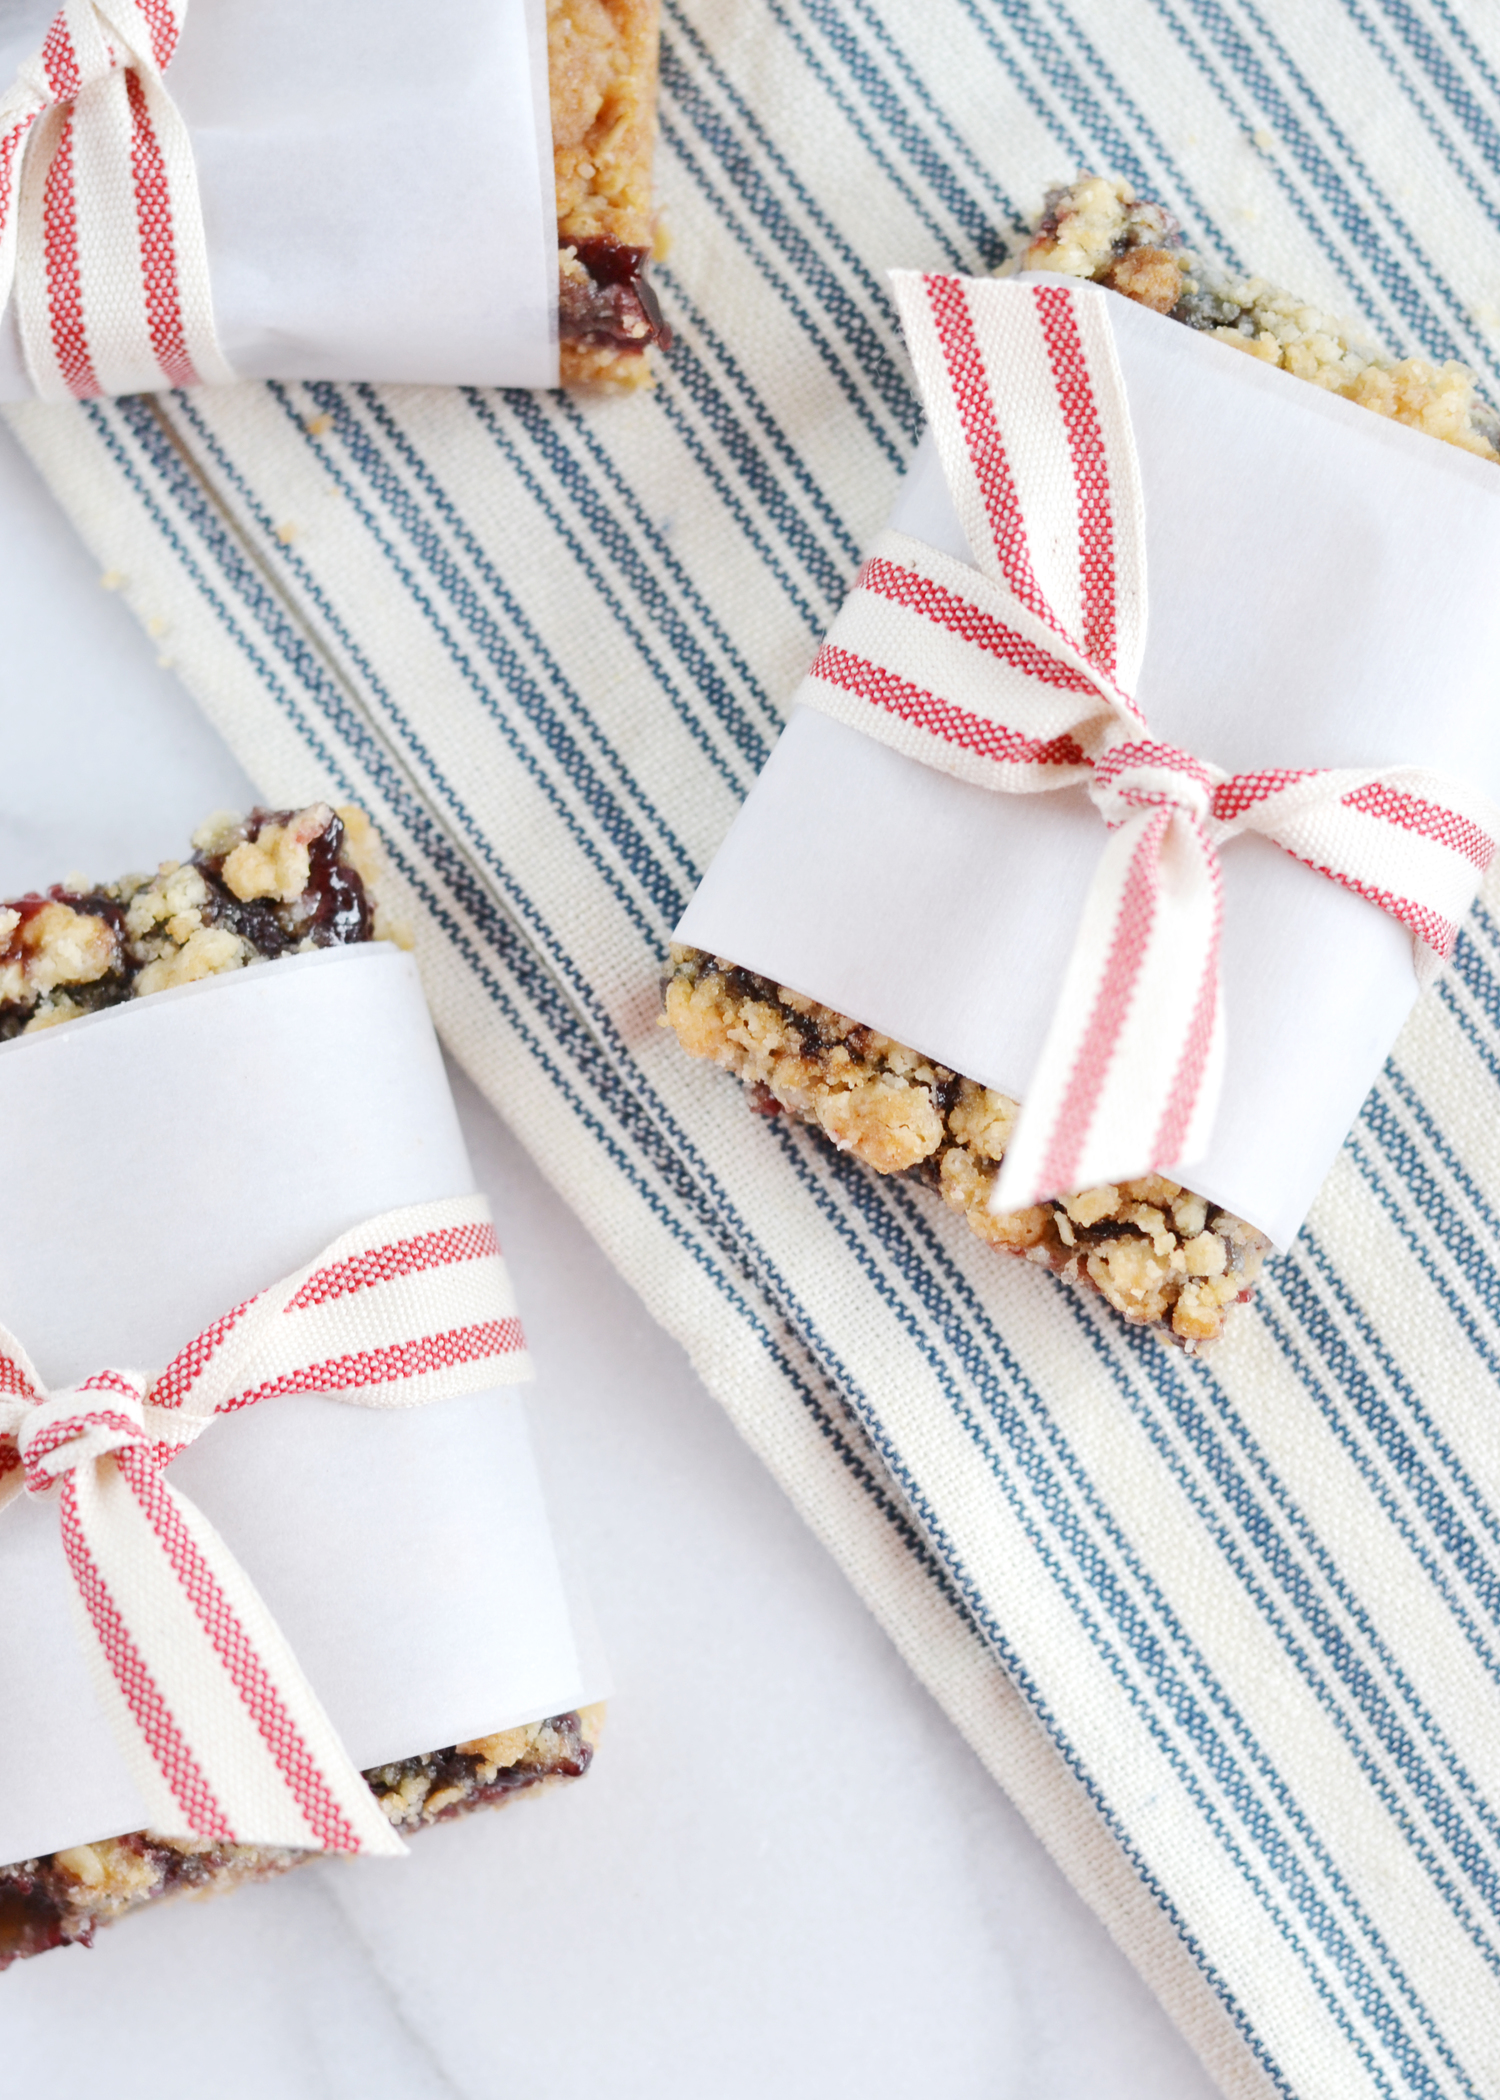 These+blackberry+crumble+bars+are+so+easy+to+throw+together+from+boxwoodavenue